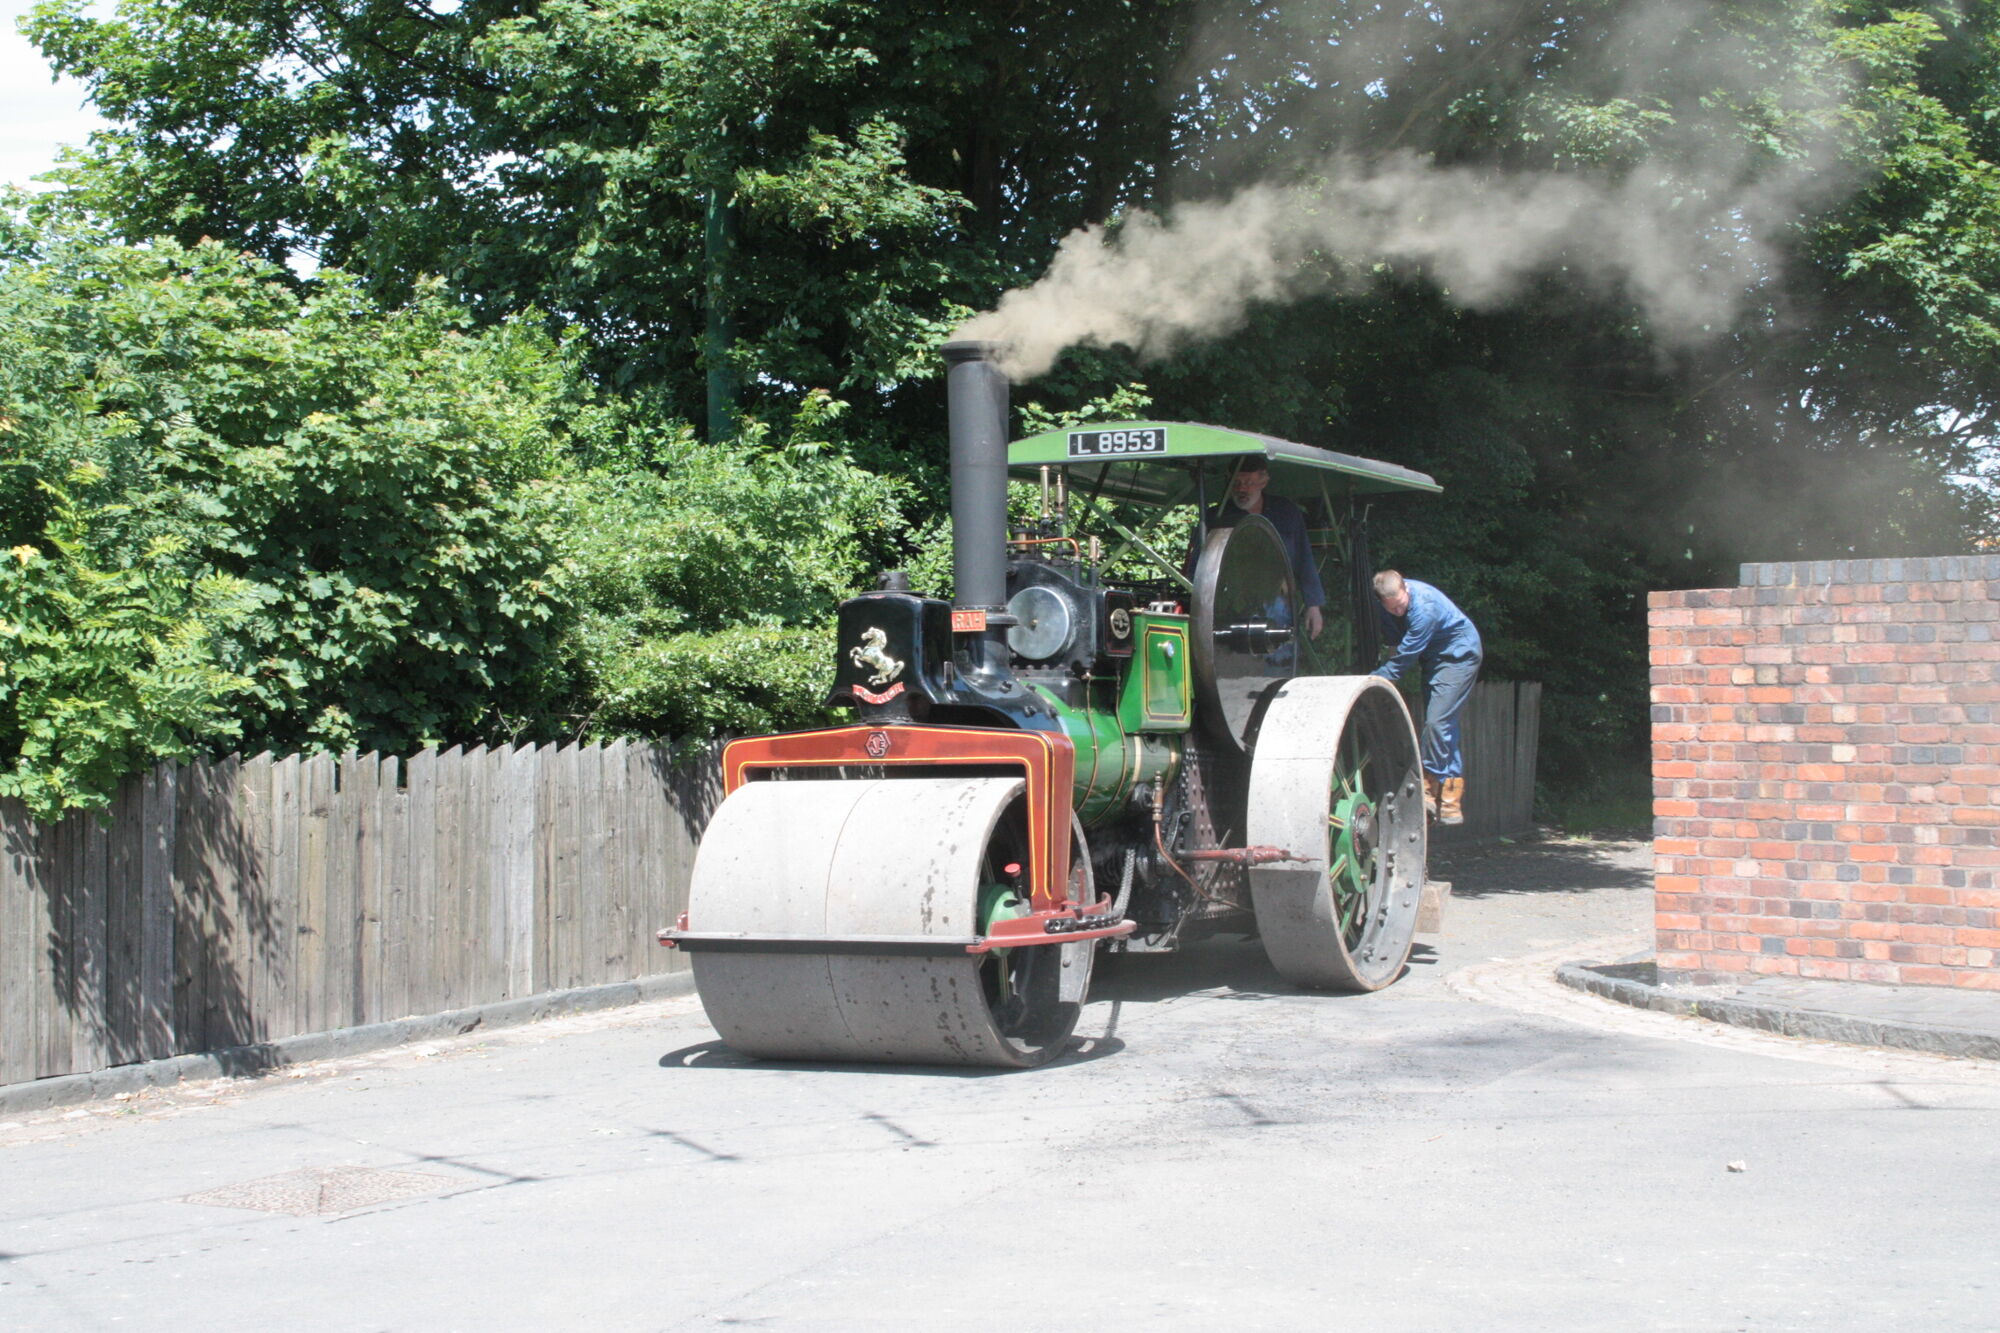 Black country steam event 2010 tractor construction plant wiki fandom powered by wikia - Porter international wiki ...